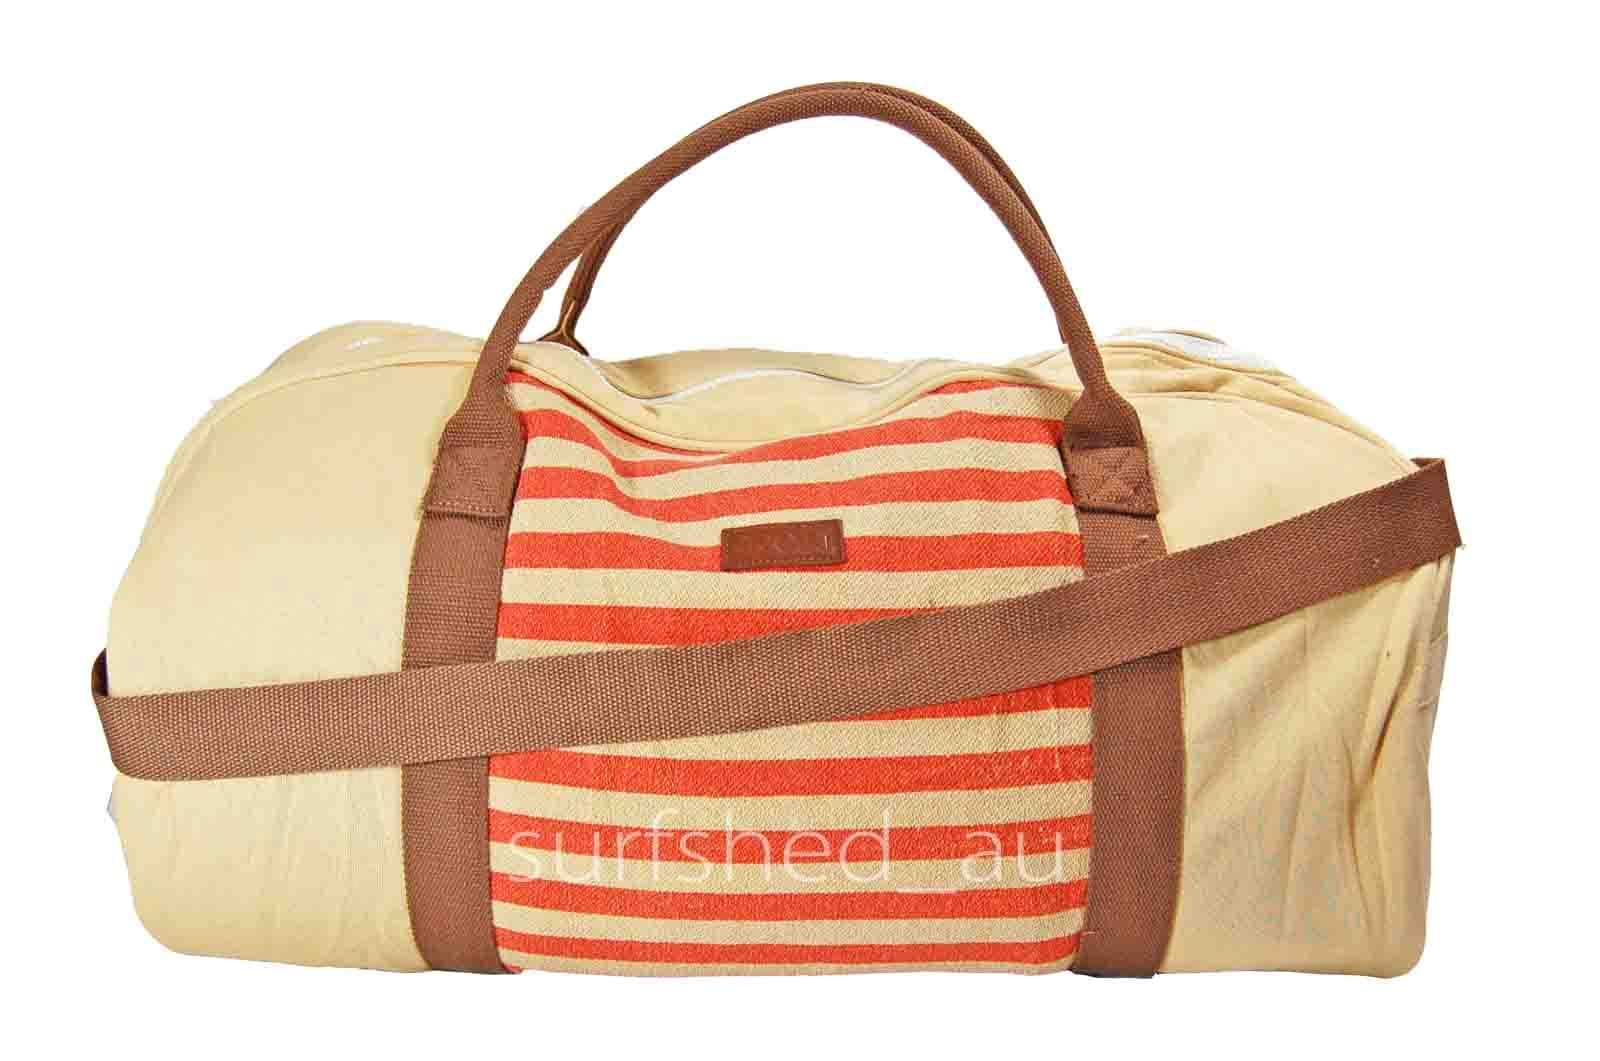 Simple  BAGS  OVERNIGHT BAGS  WOMENS  RIP CURL DREAMWEAVER OVERNIGHT BAG